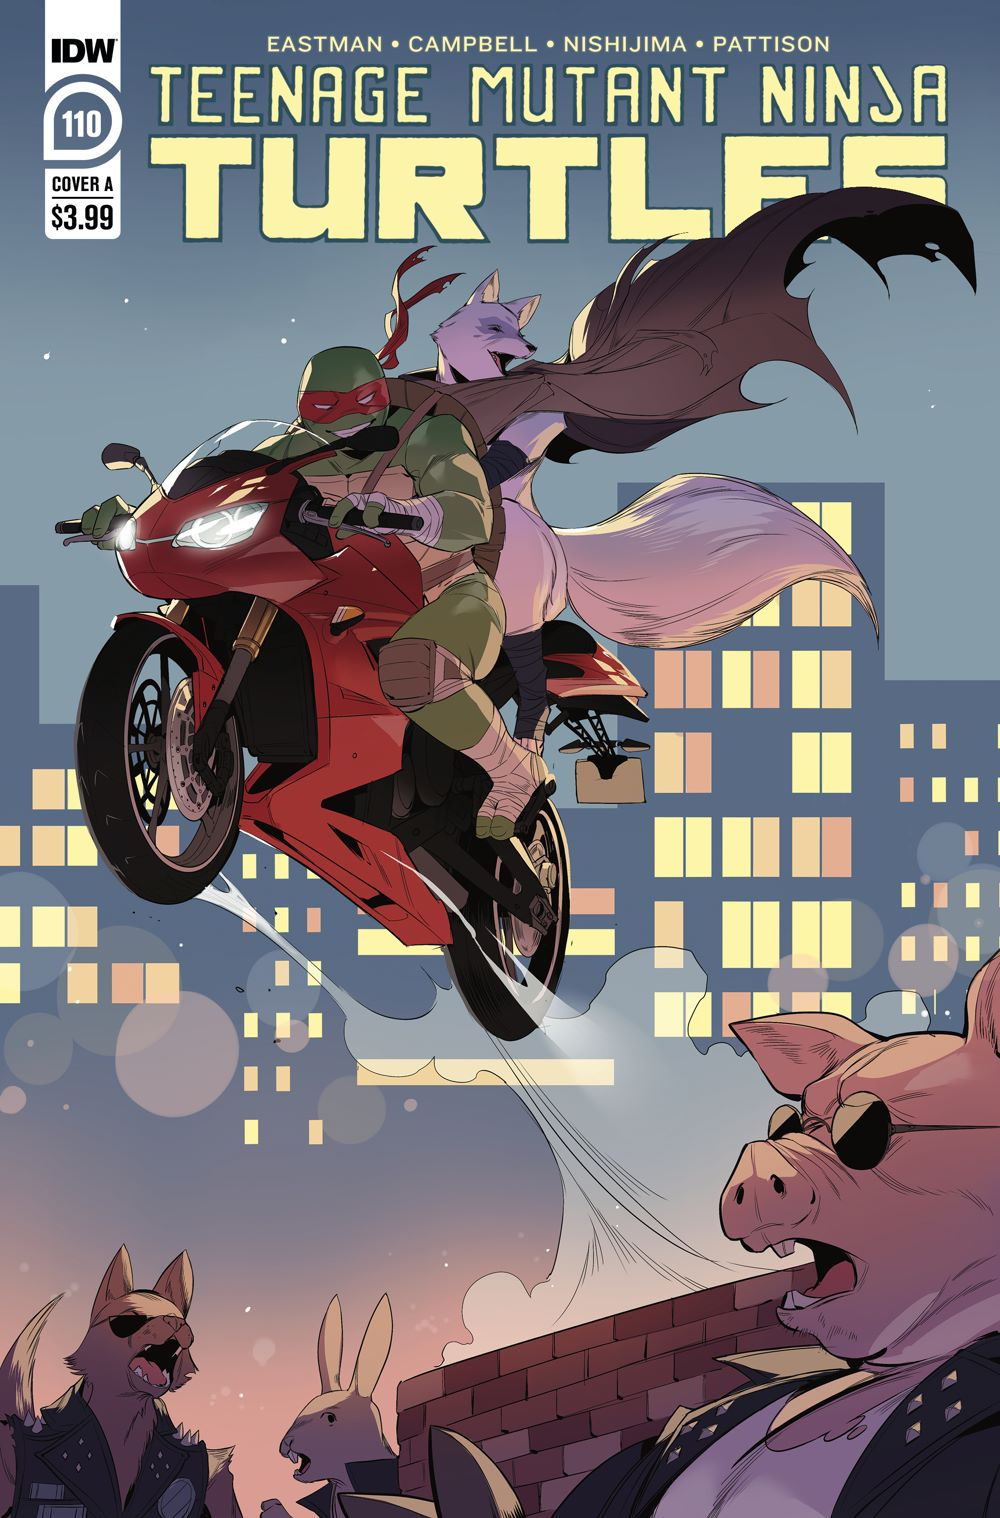 TMNT110_cvrA ComicList Previews: TEENAGE MUTANT NINJA TURTLES #110